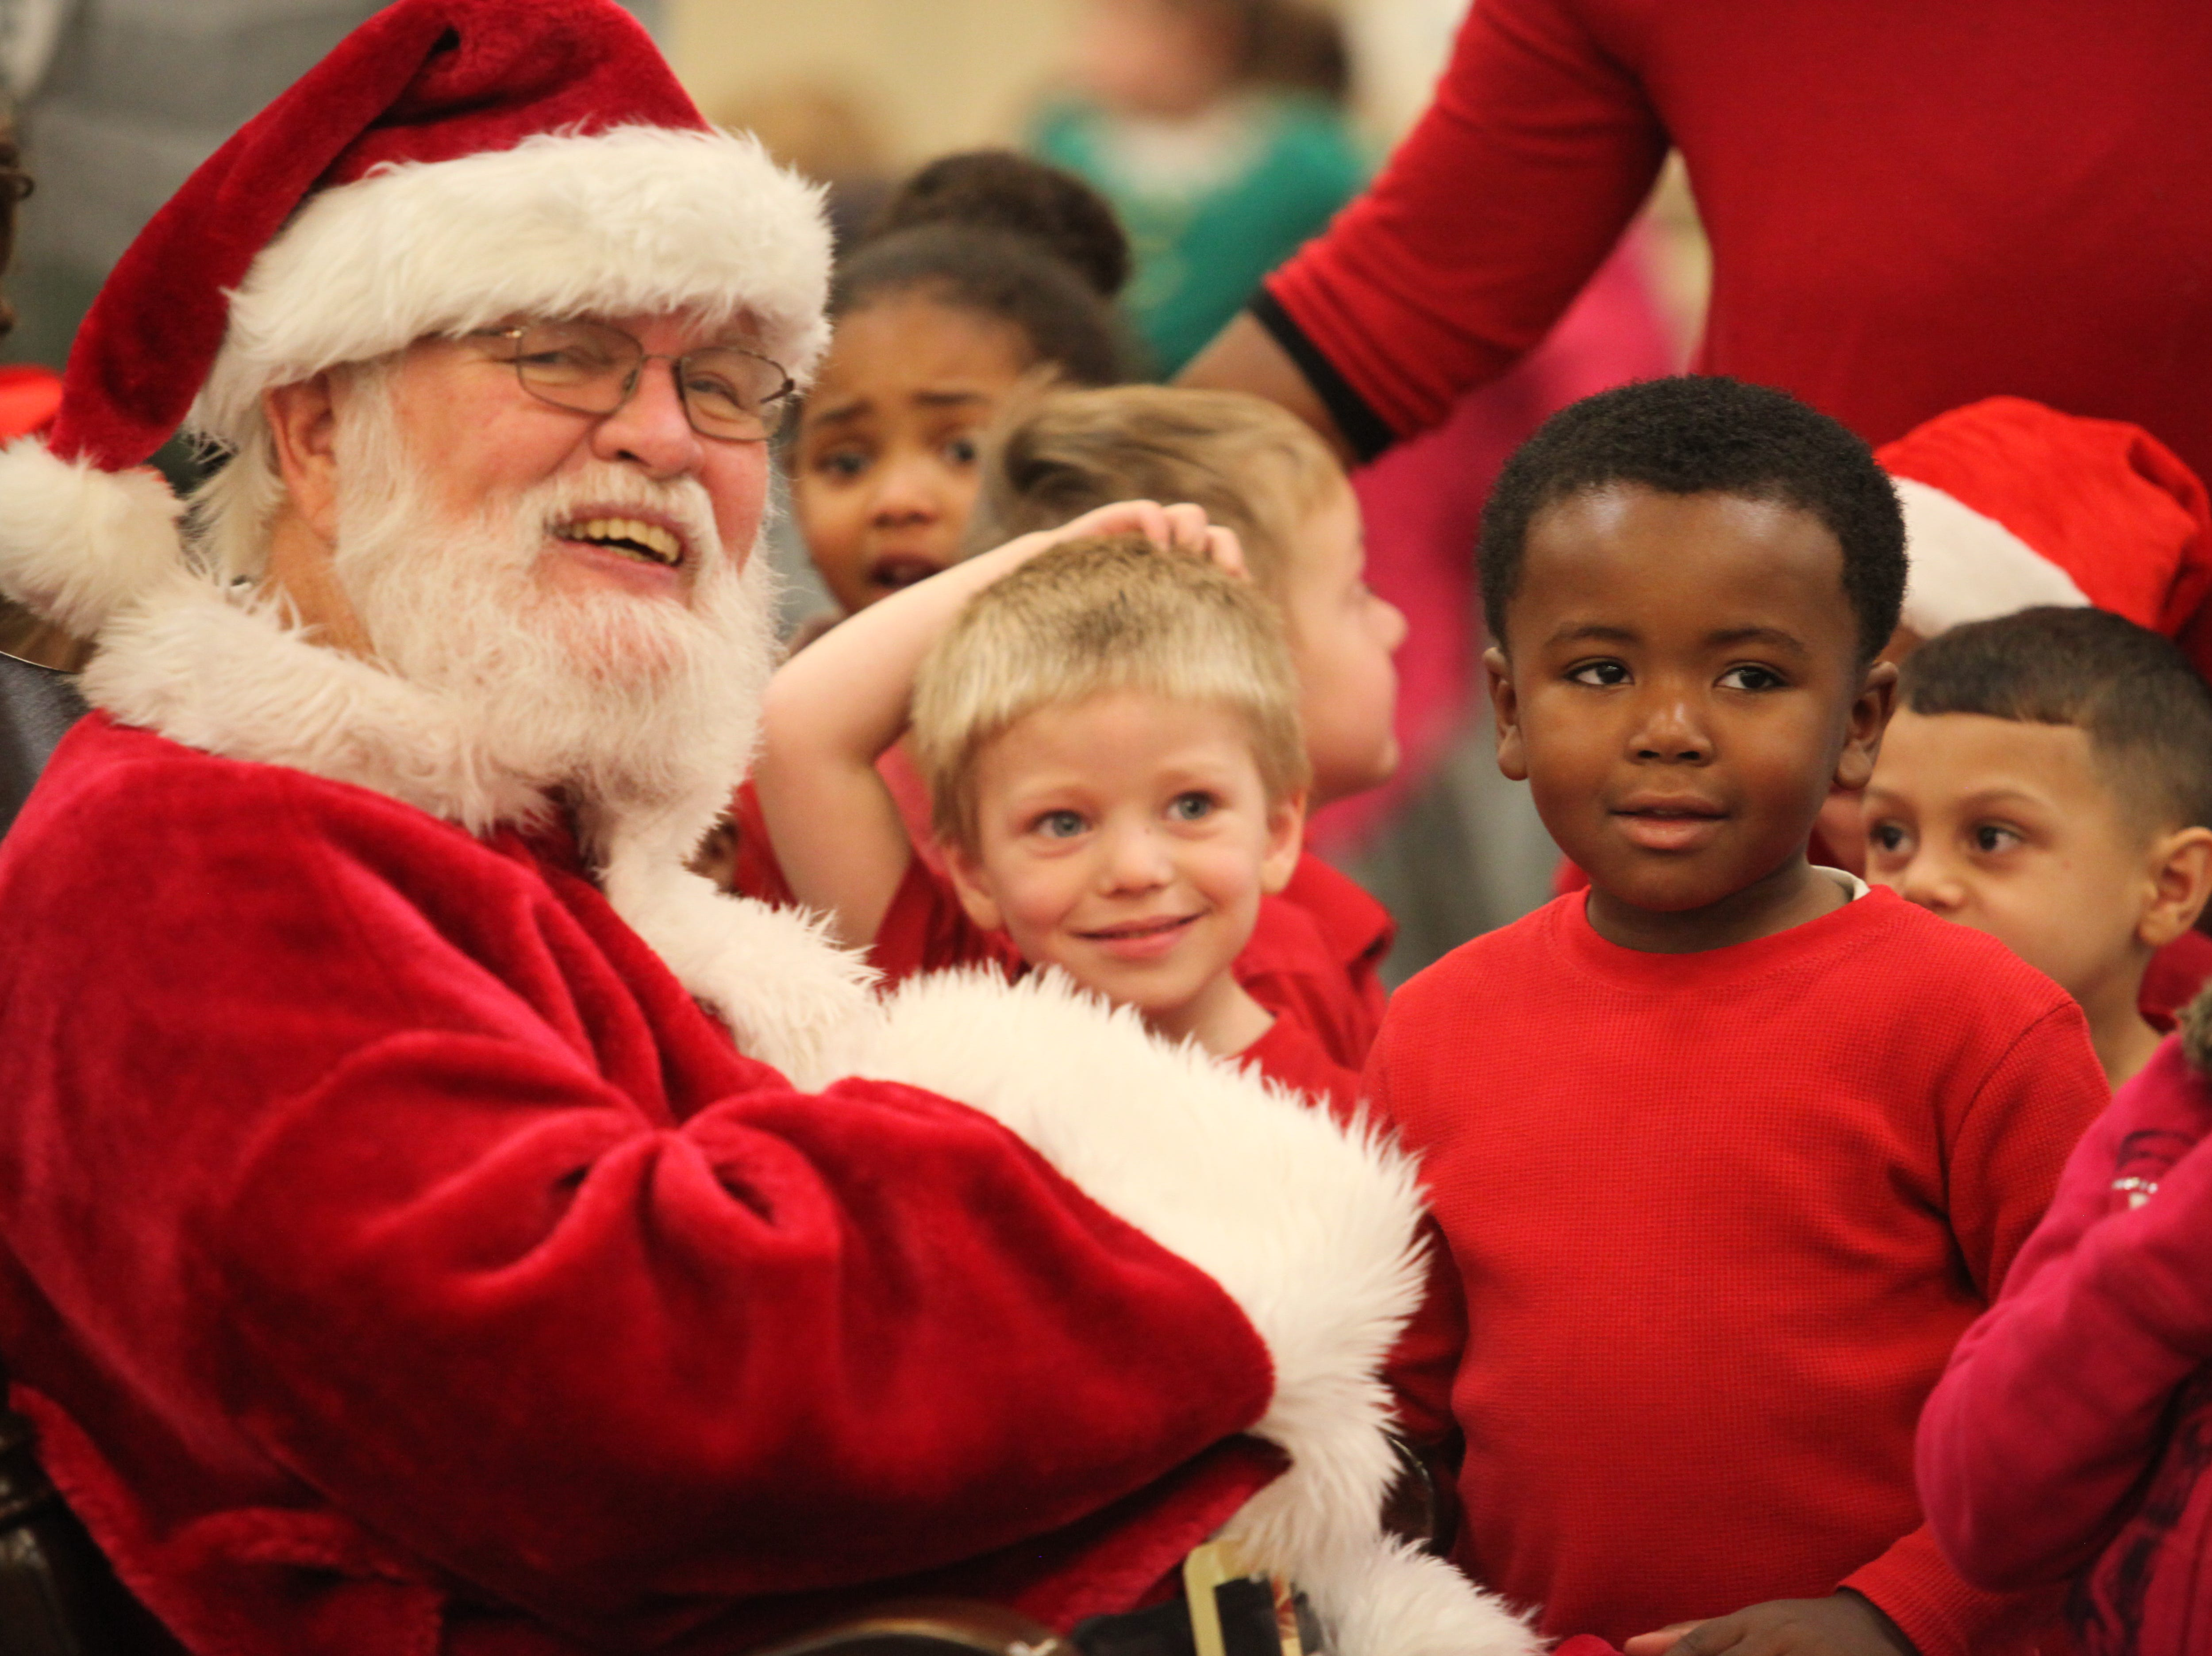 Santa visits with kids during the Clarksville Kiwanis Club's annual Christmas Party giving 144 Head Start children a visit with Santa Claus and a bag full of early Christmas presents, Dec. 4, 2018 in Clarksville, Tenn.